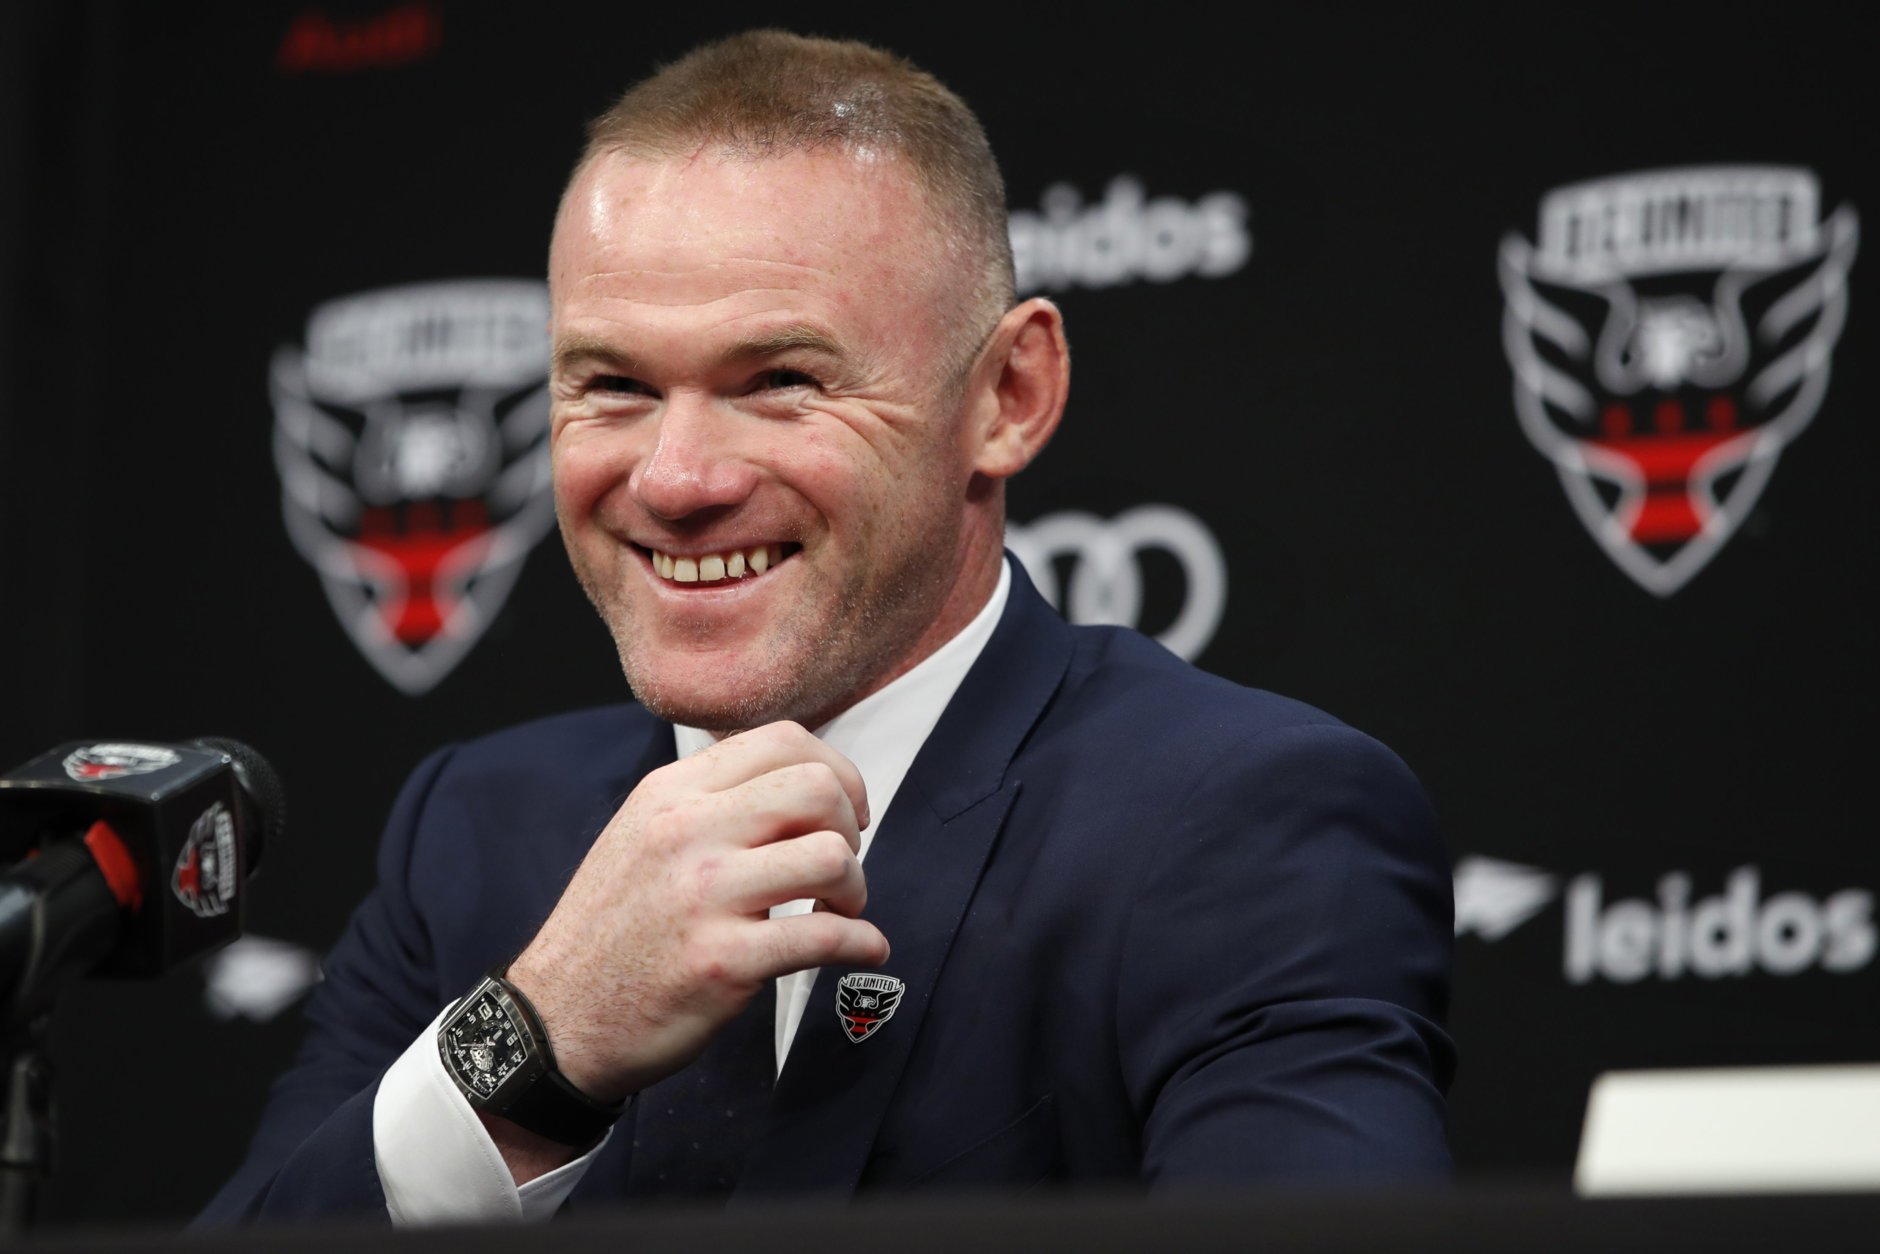 English soccer star Wayne Rooney, the all-time leading scorer for England's national team and Manchester United in the Premier League, smiles during a news conference announcing his signing with MLS team D.C. United, Monday, July 2, 2018, at the Newseum in Washington. (AP Photo/Jacquelyn Martin)